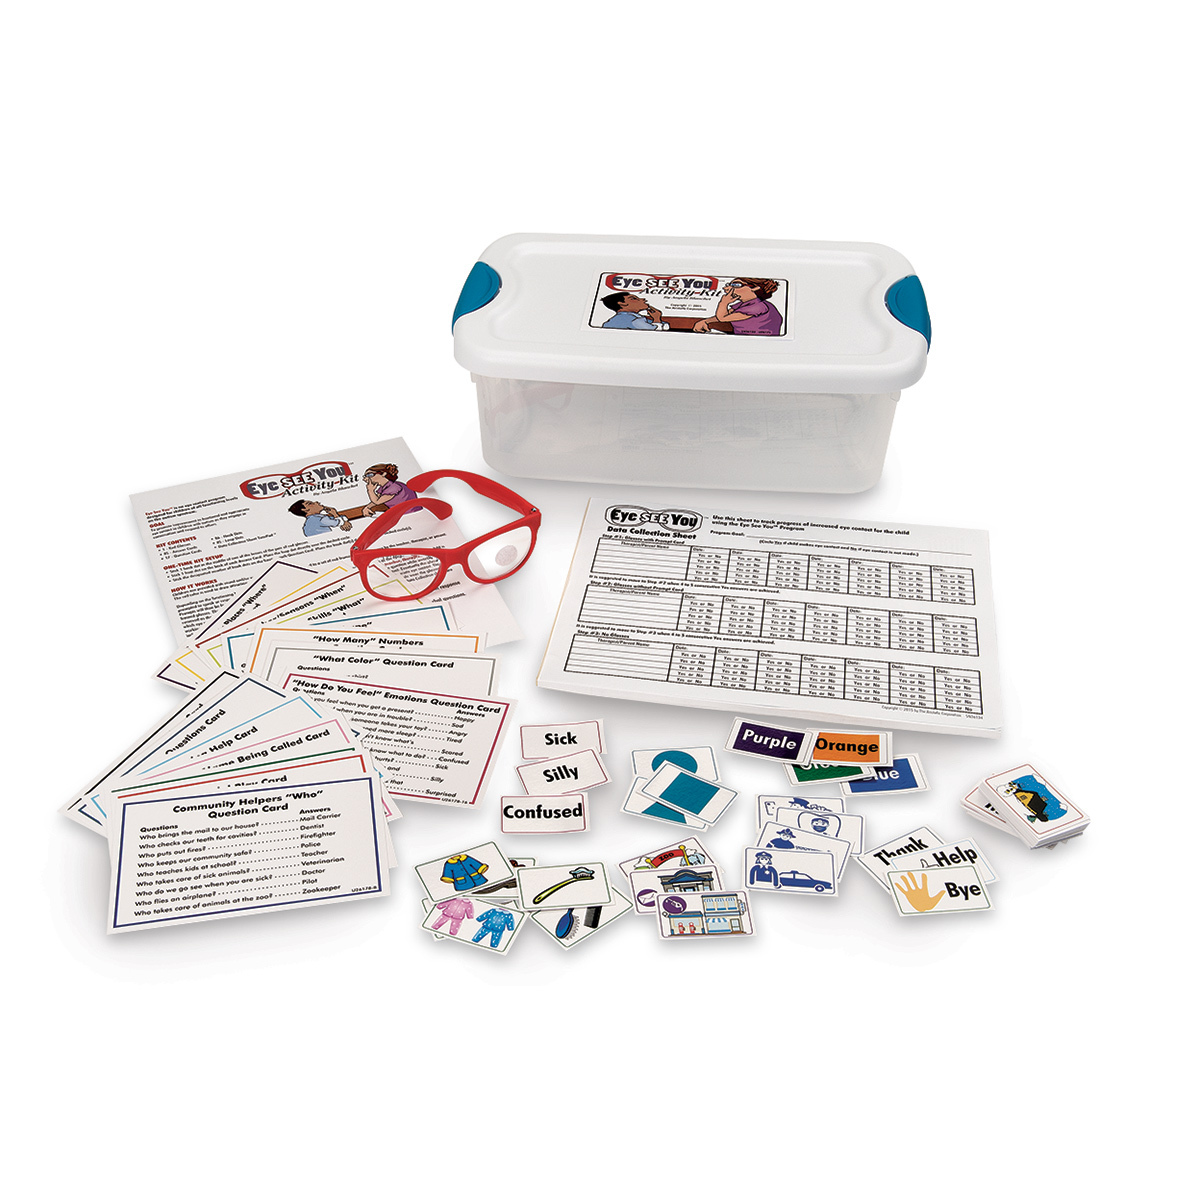 Eye See You Activity Kit from enasco $6.49 (reg $26)